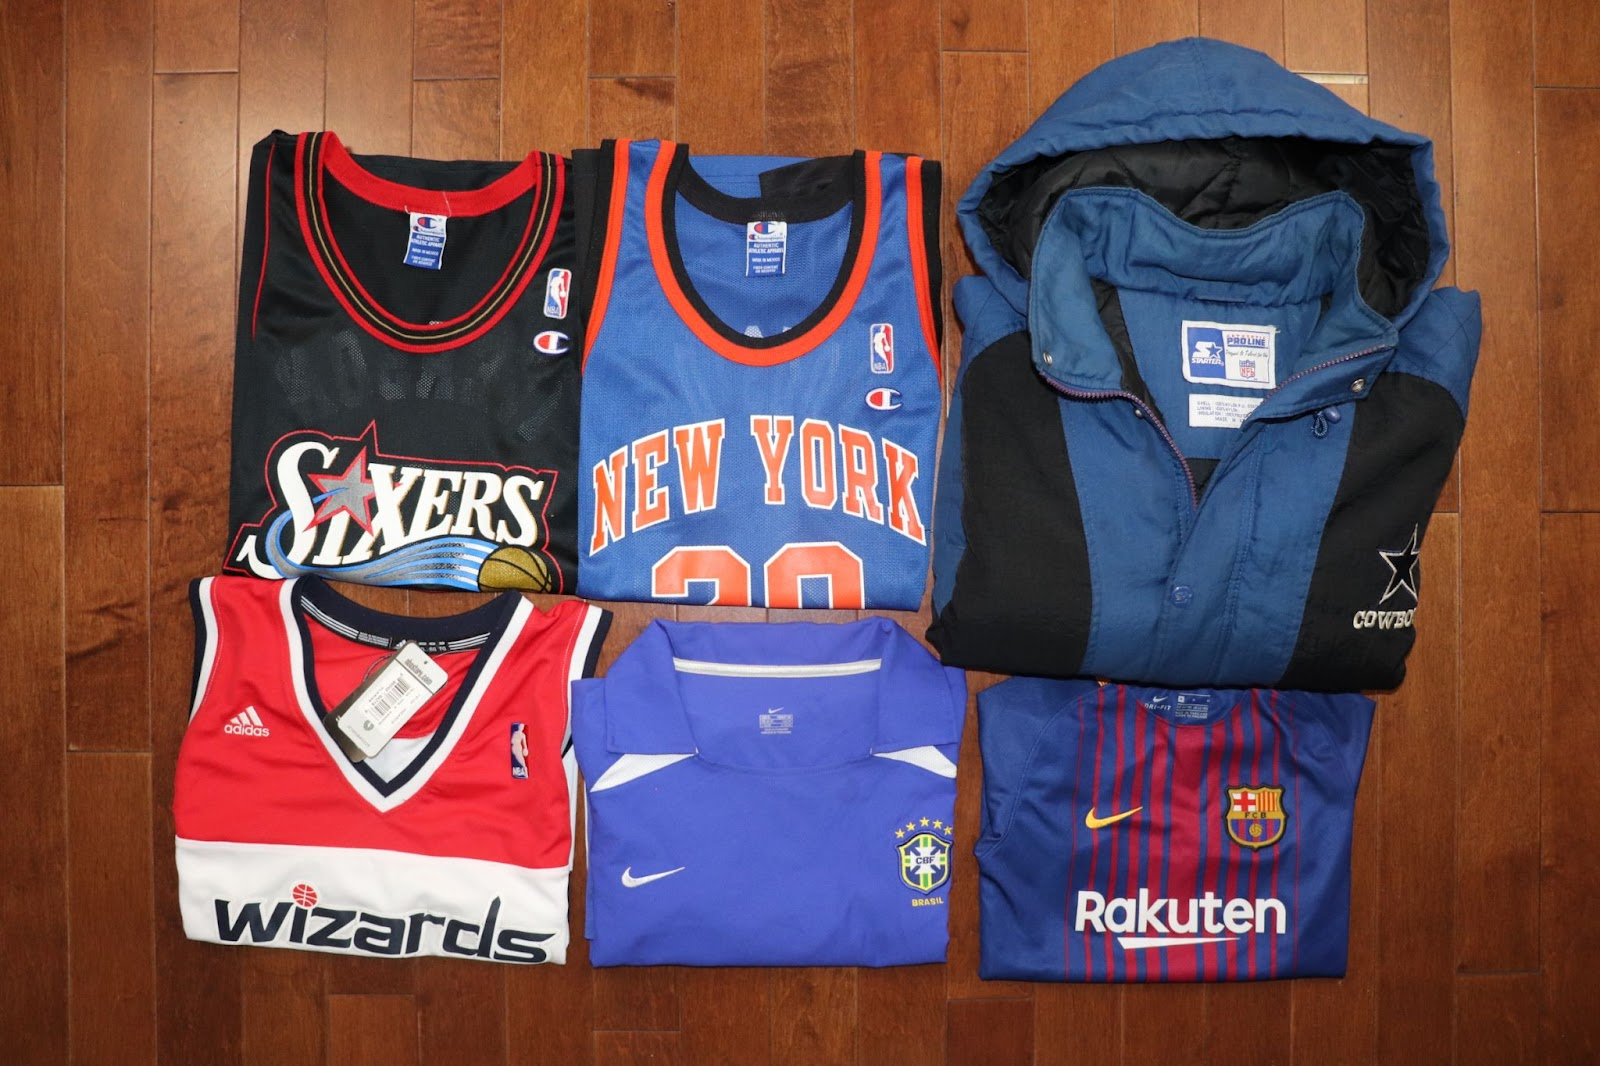 College and professional sportswear